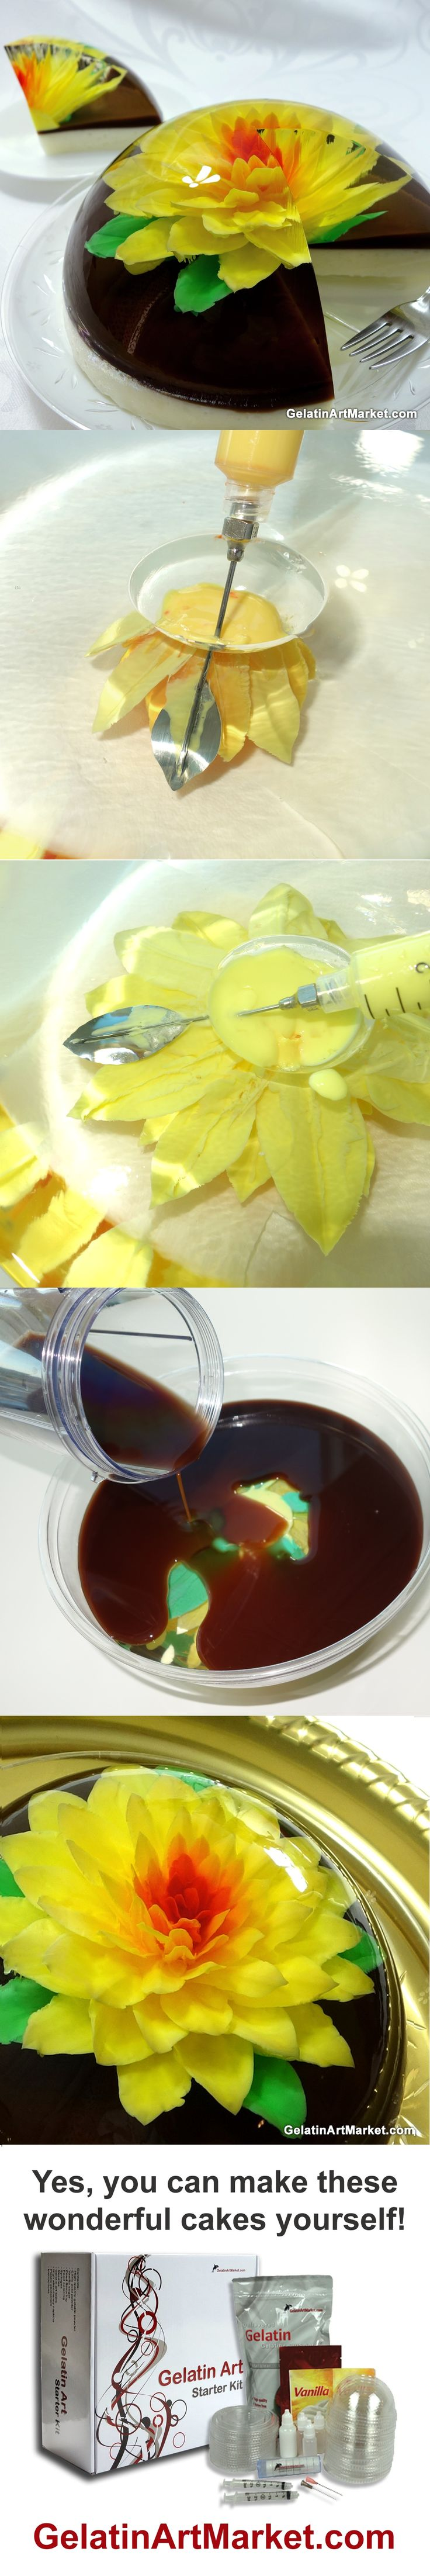 Gelatin Art Cake - A flower drawn in clear jelly. Anyone can do it, learn how!